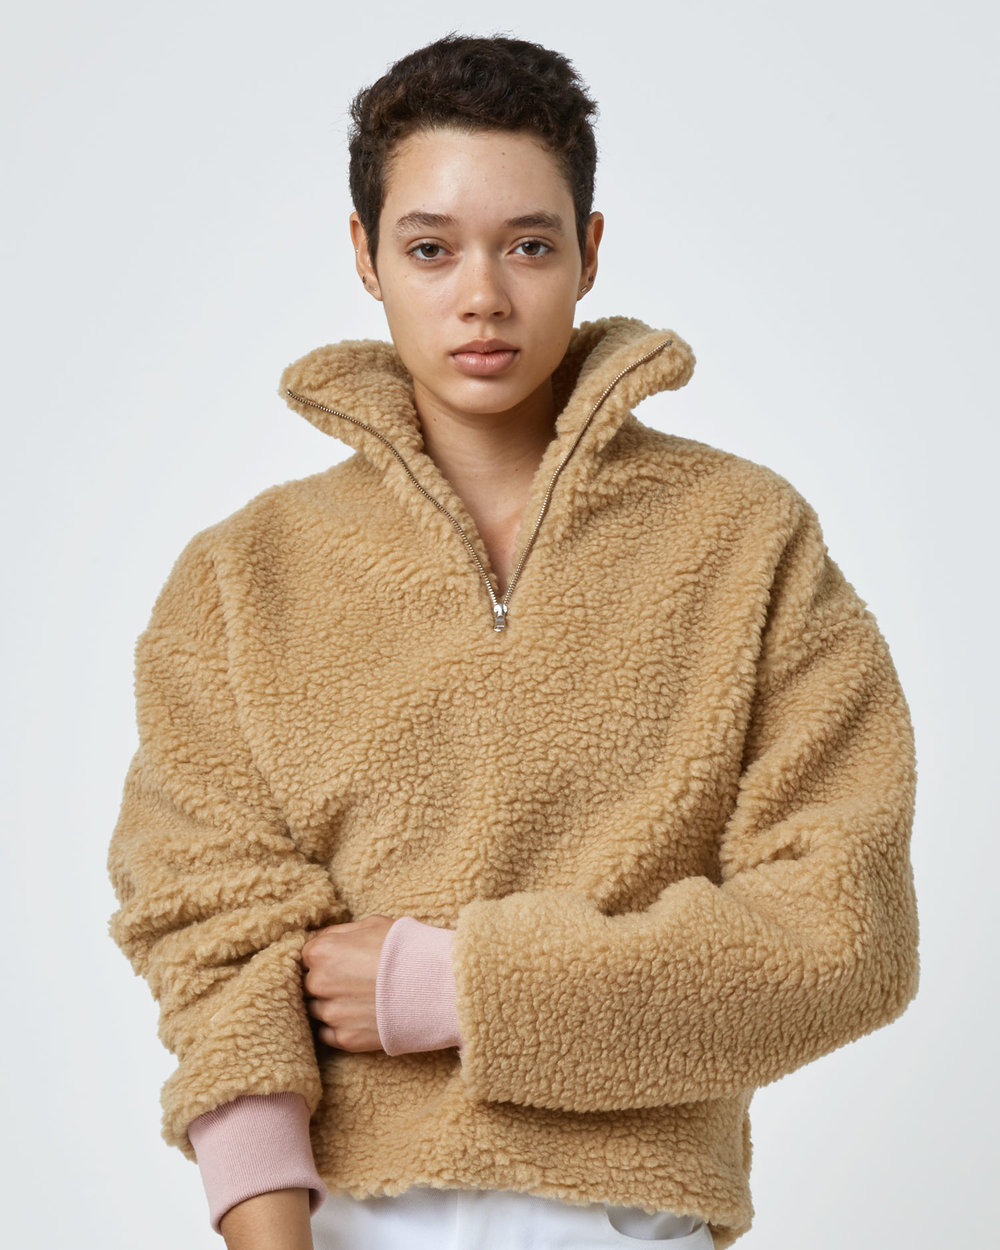 Shop Teddy Fleece Sweater in Camel with Pink Rib by One DNA